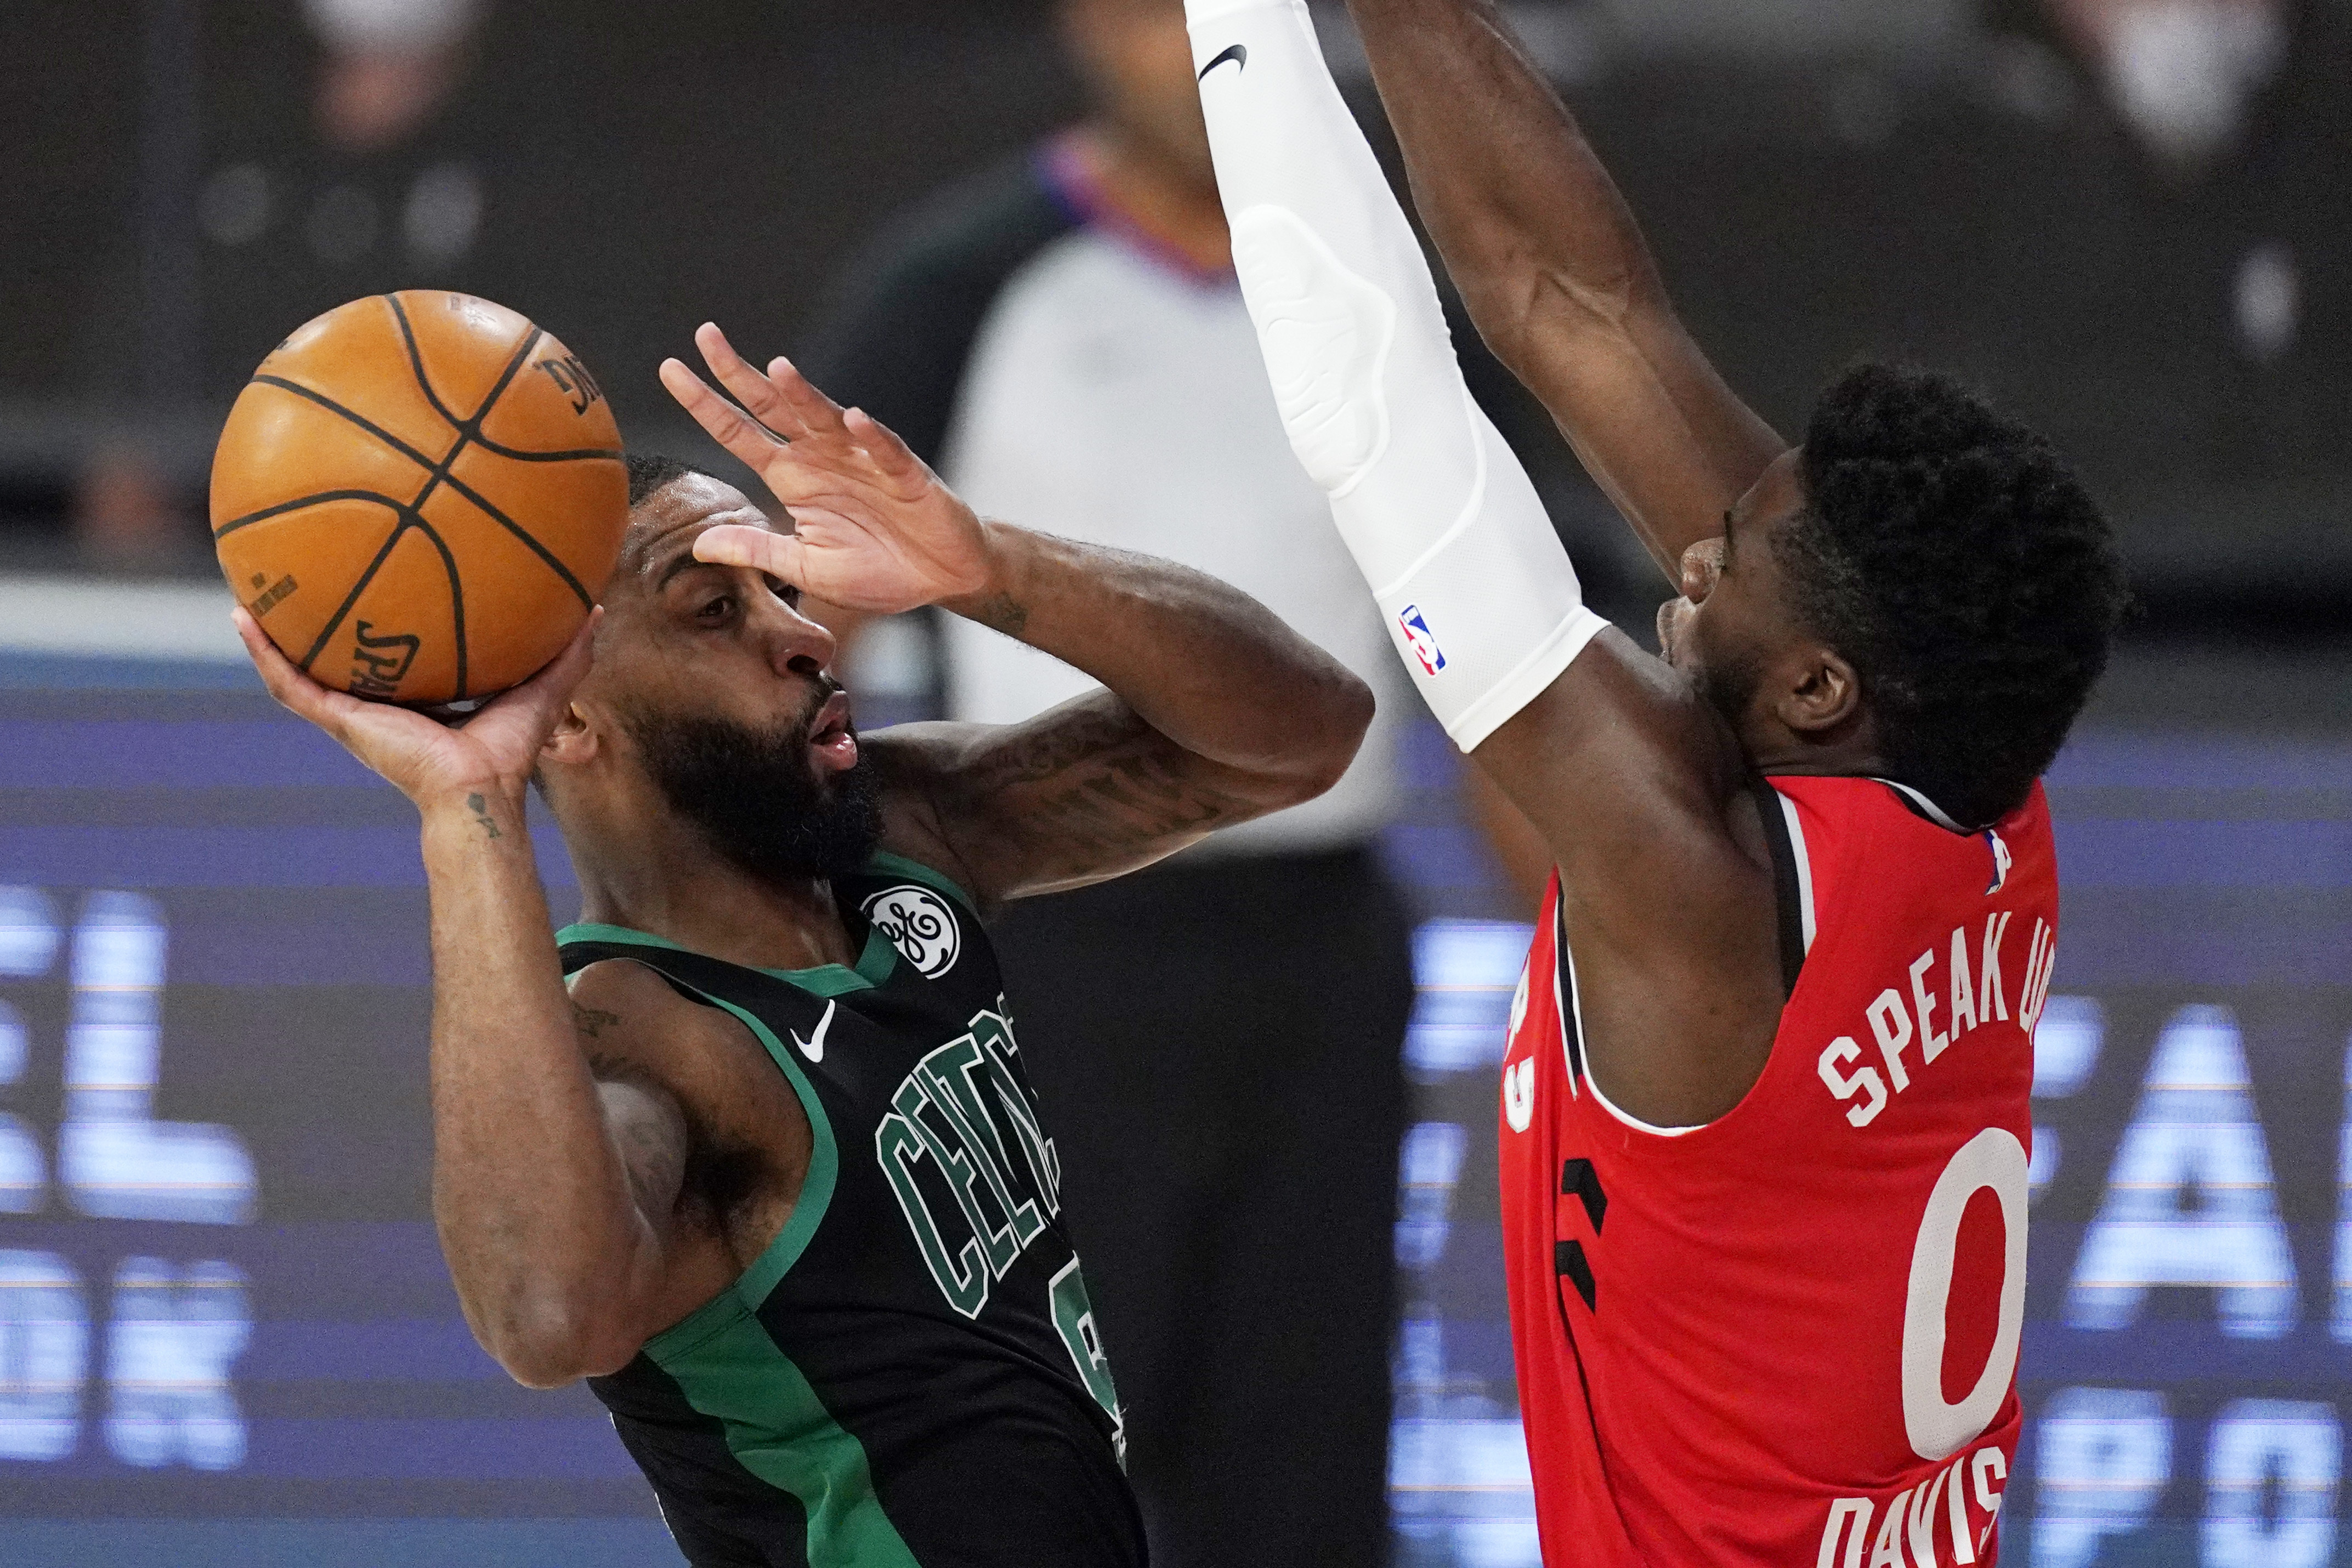 The Raptors Will Be Fighting For Their Lives Can The Celtics Close It Out In Game 6 The Boston Globe